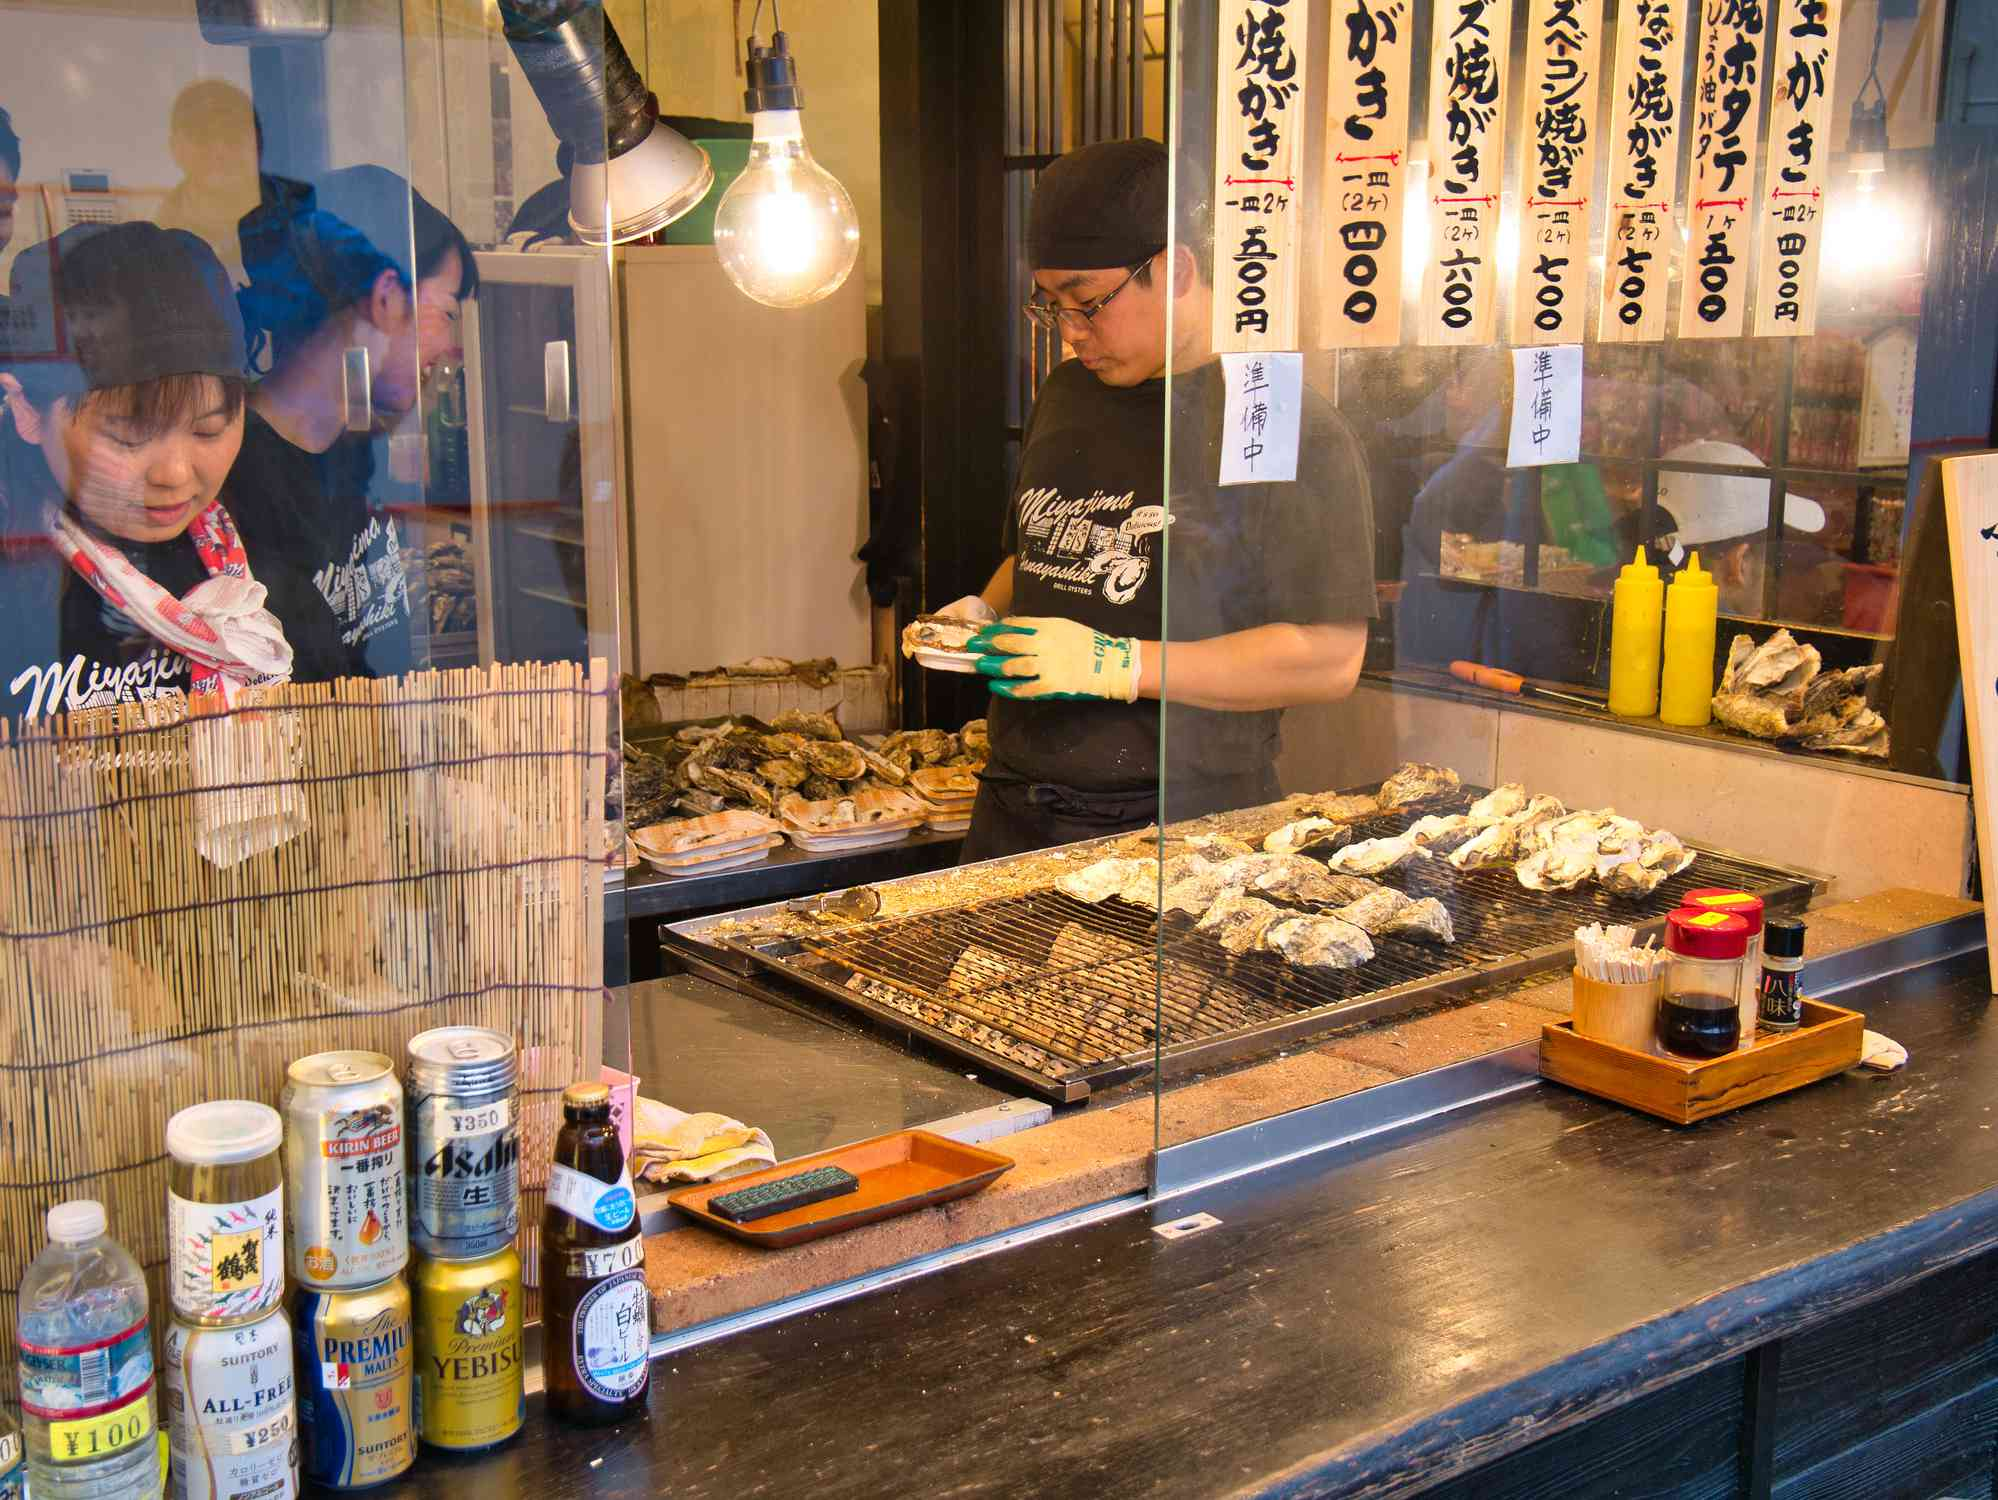 Oyster street food stall in Hiroshima